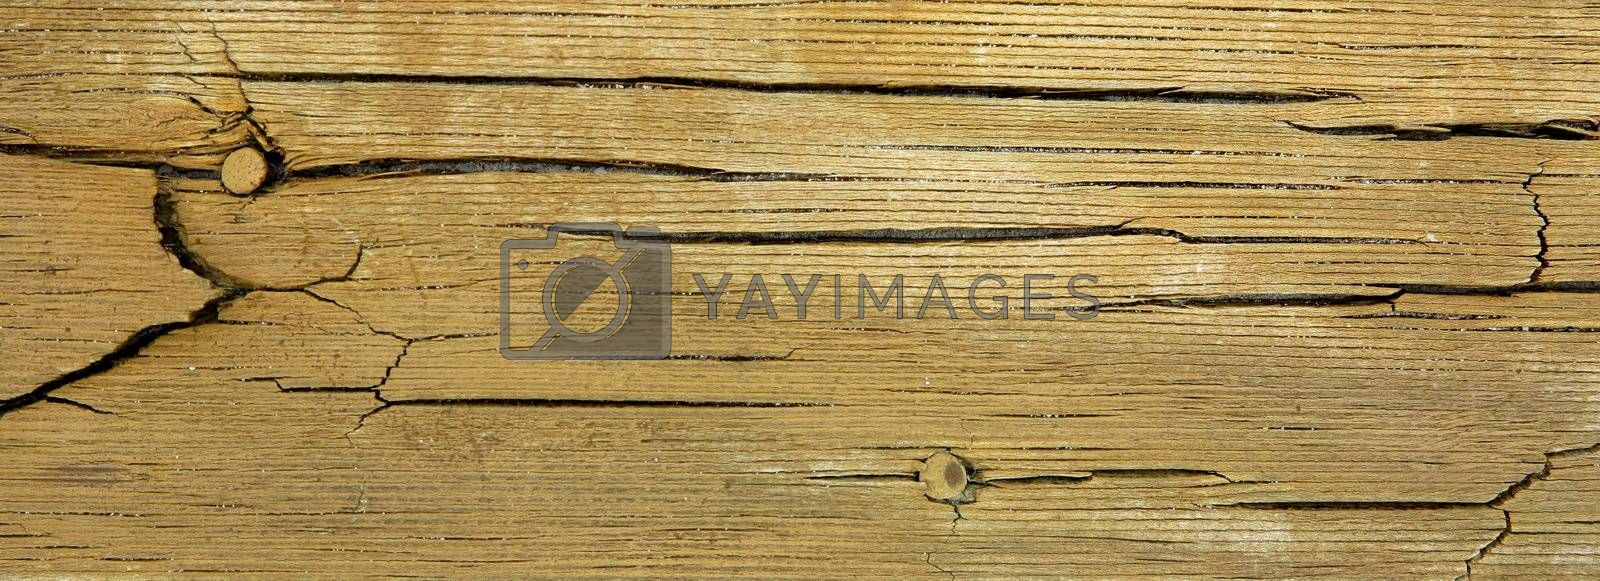 Cracks on a wooden plank by get4net